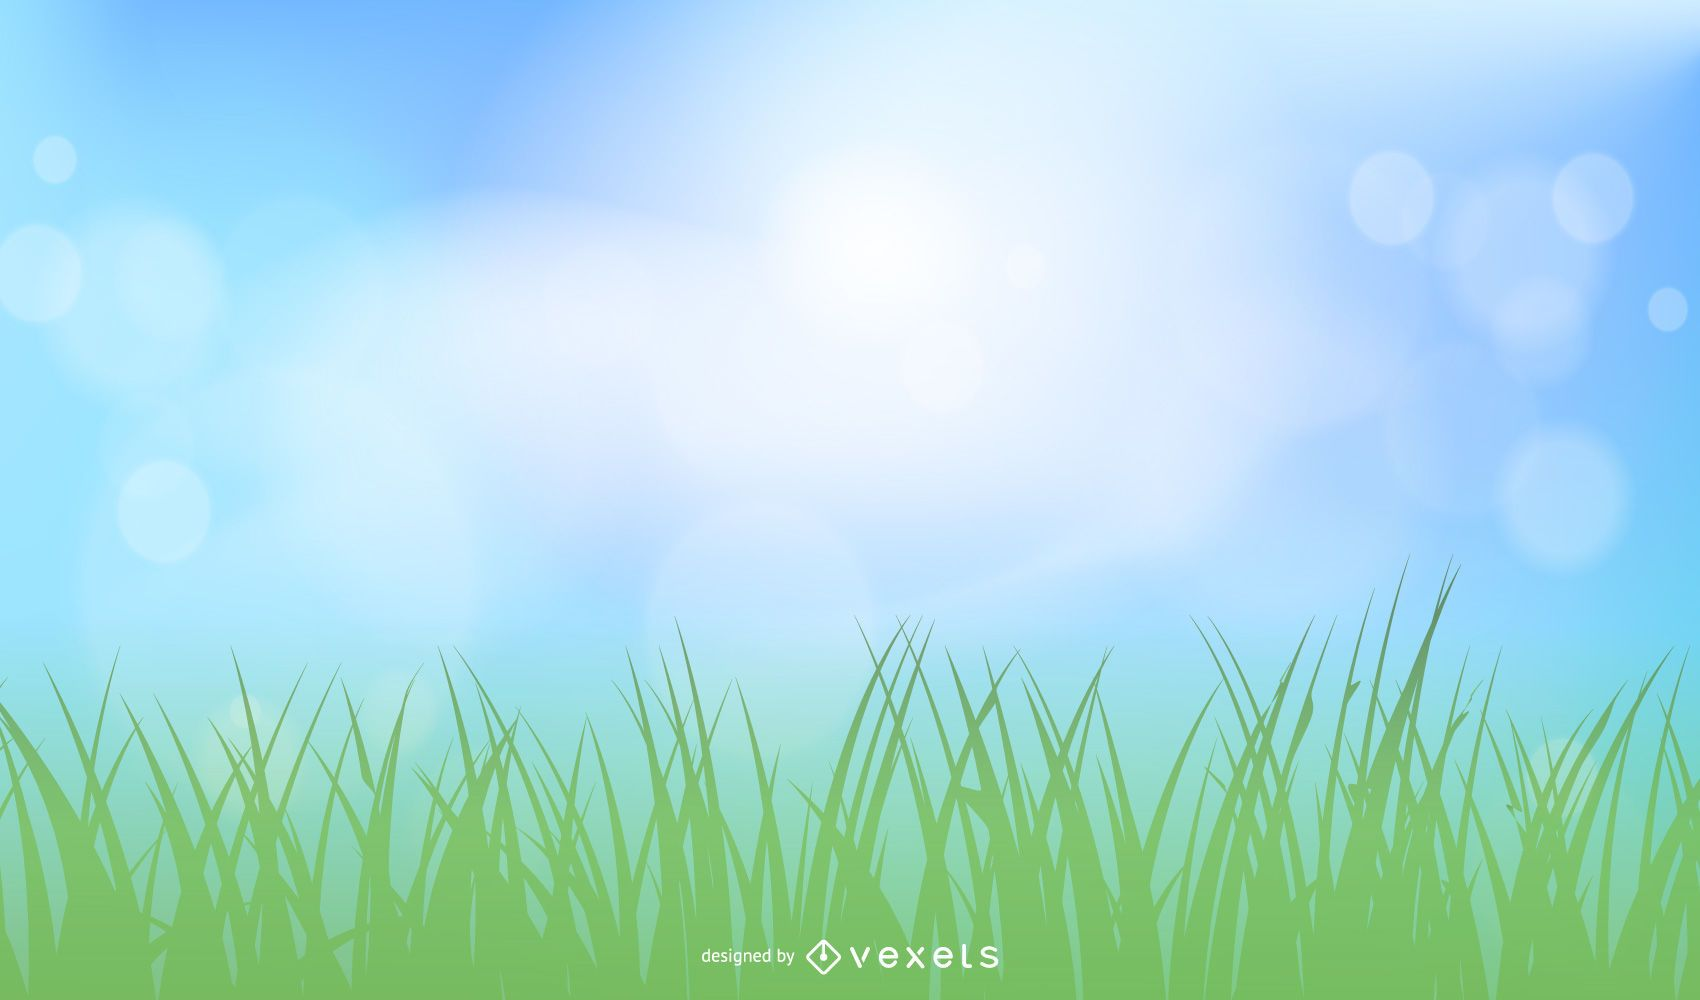 Realistic Sunny Sky with Grassy Ground